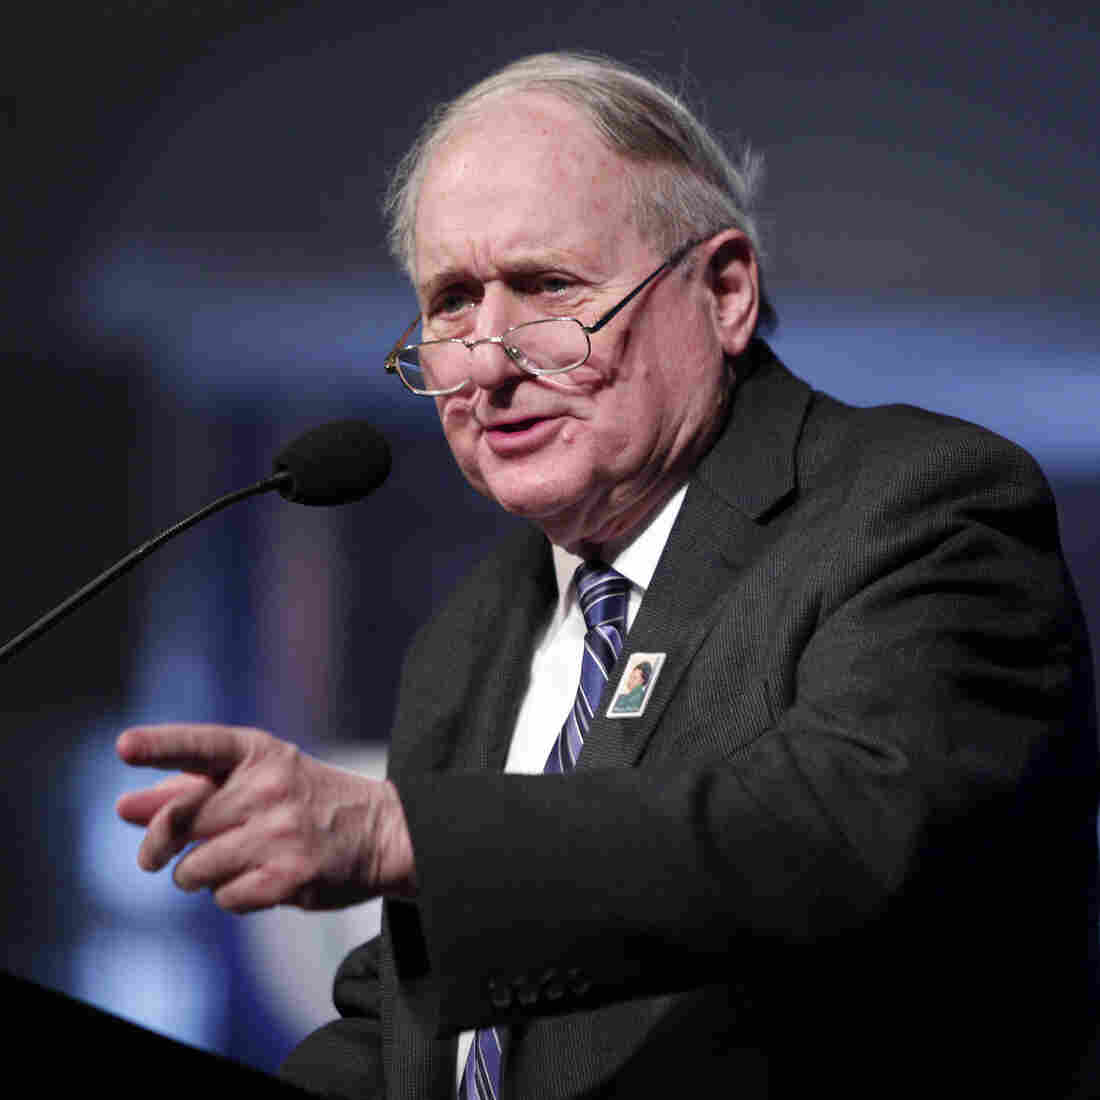 Retiring Carl Levin Says He Wants To Leave The Senate Fighting